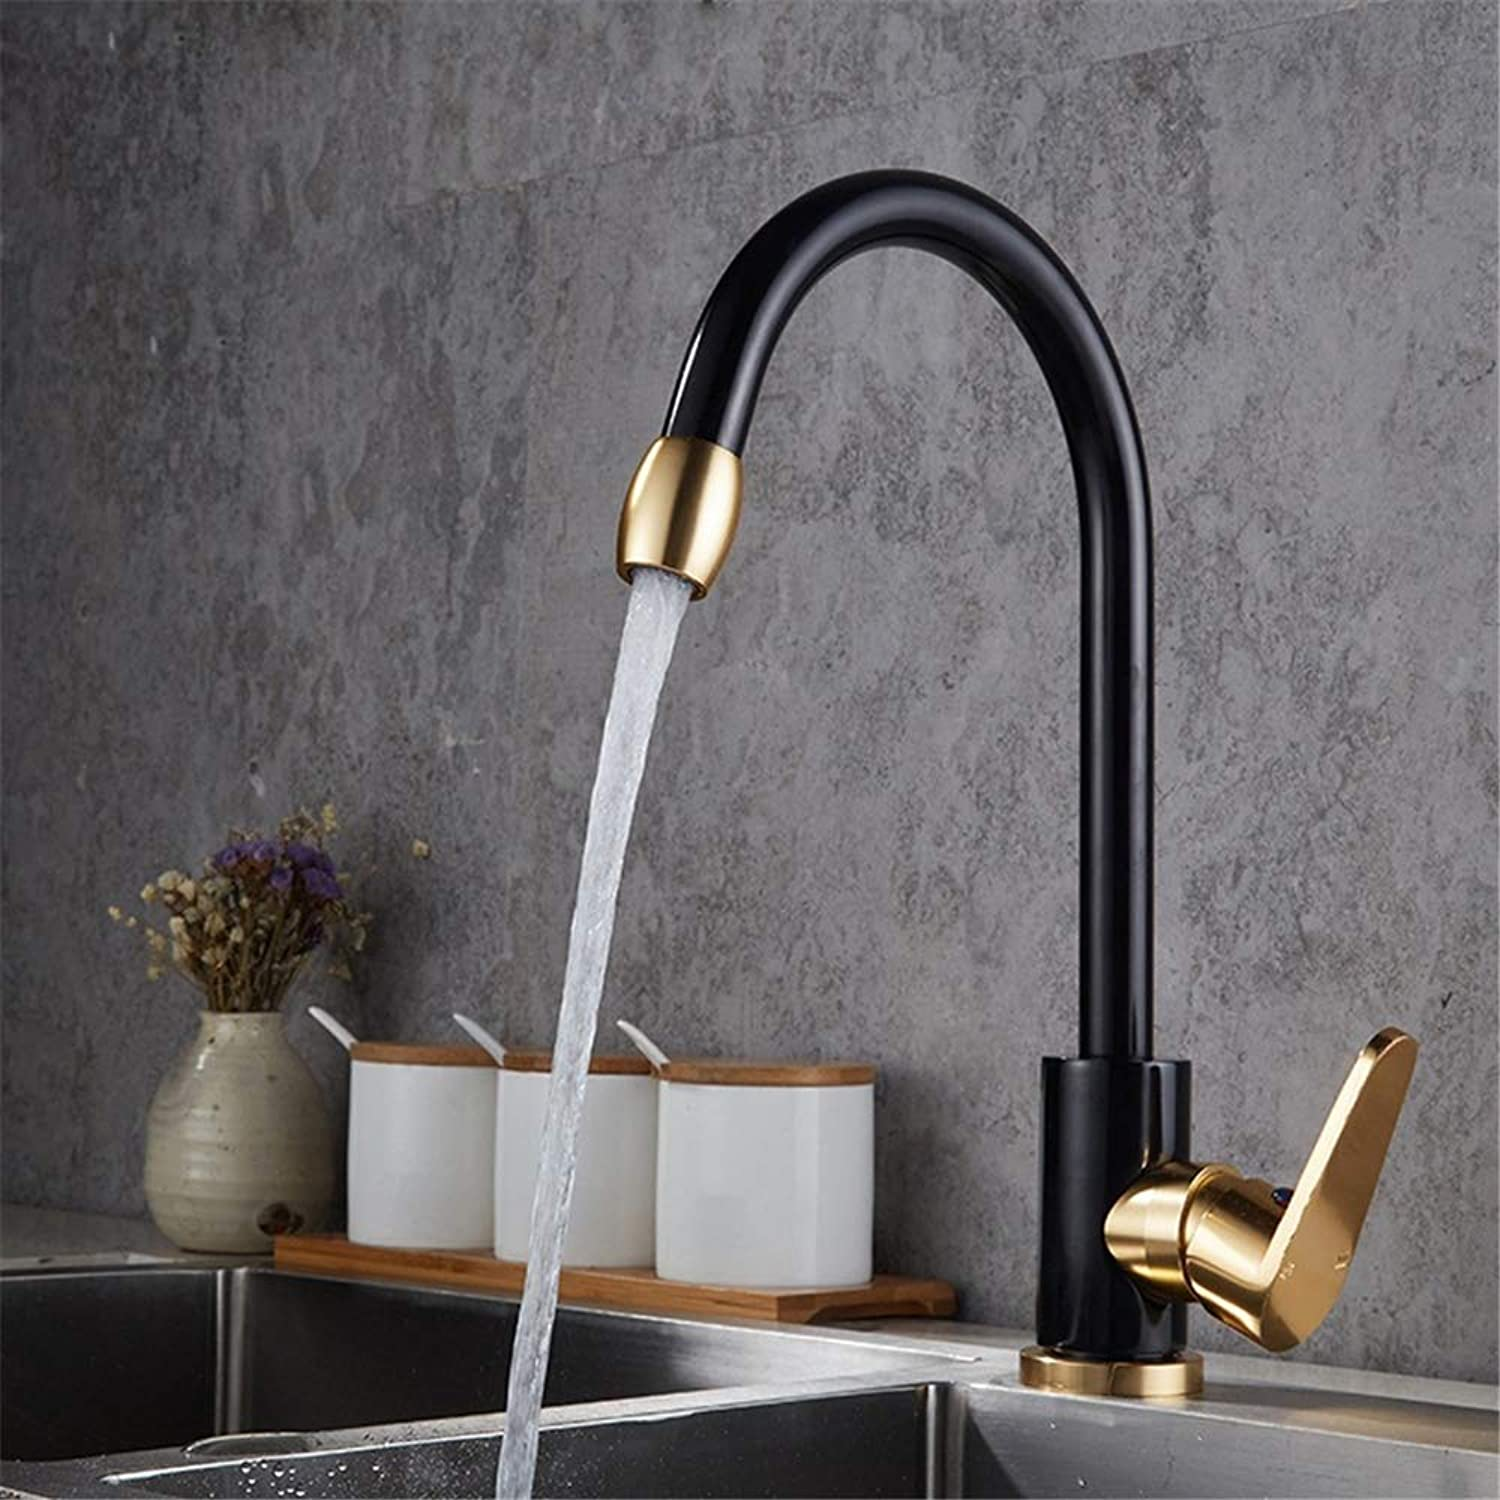 Bathroom Kitchen Sink Faucet,Black gold Fashion Space Aluminum greenical Inssizetion Hot and Cold Mixing Faucet.